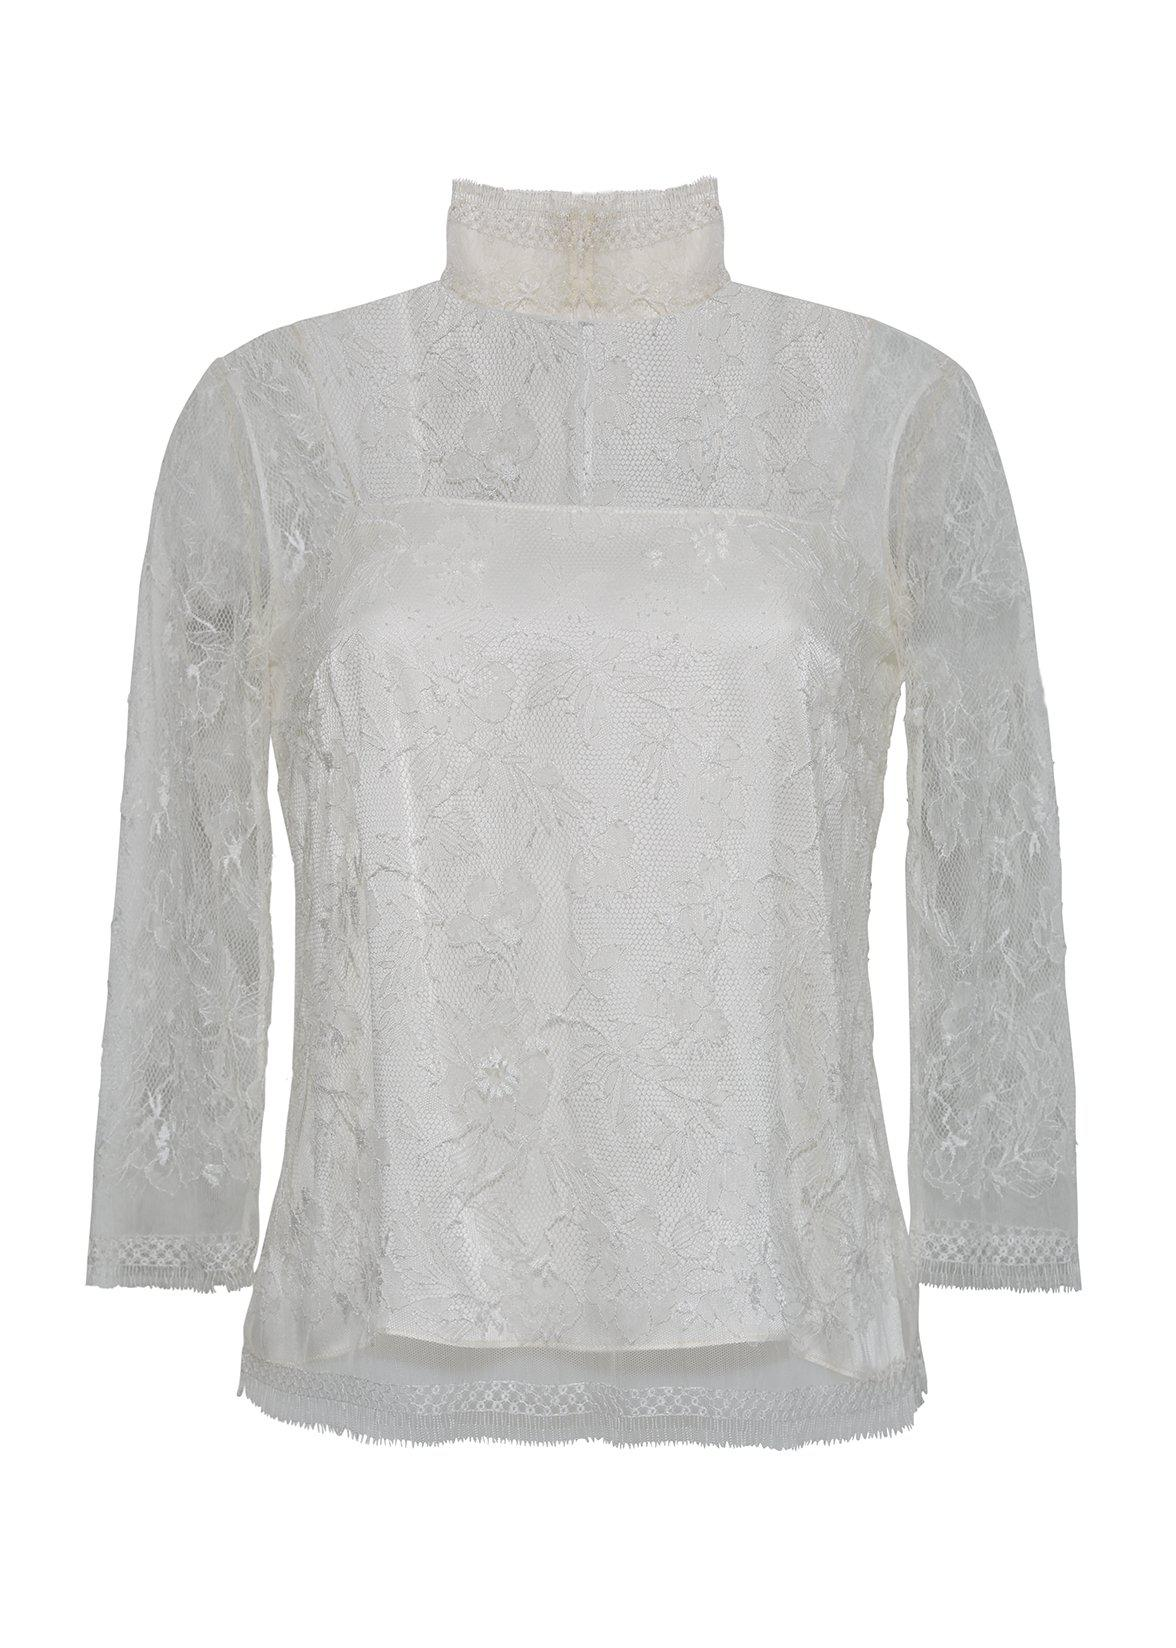 TURTLENECK IN CHANTILLY LACE 1